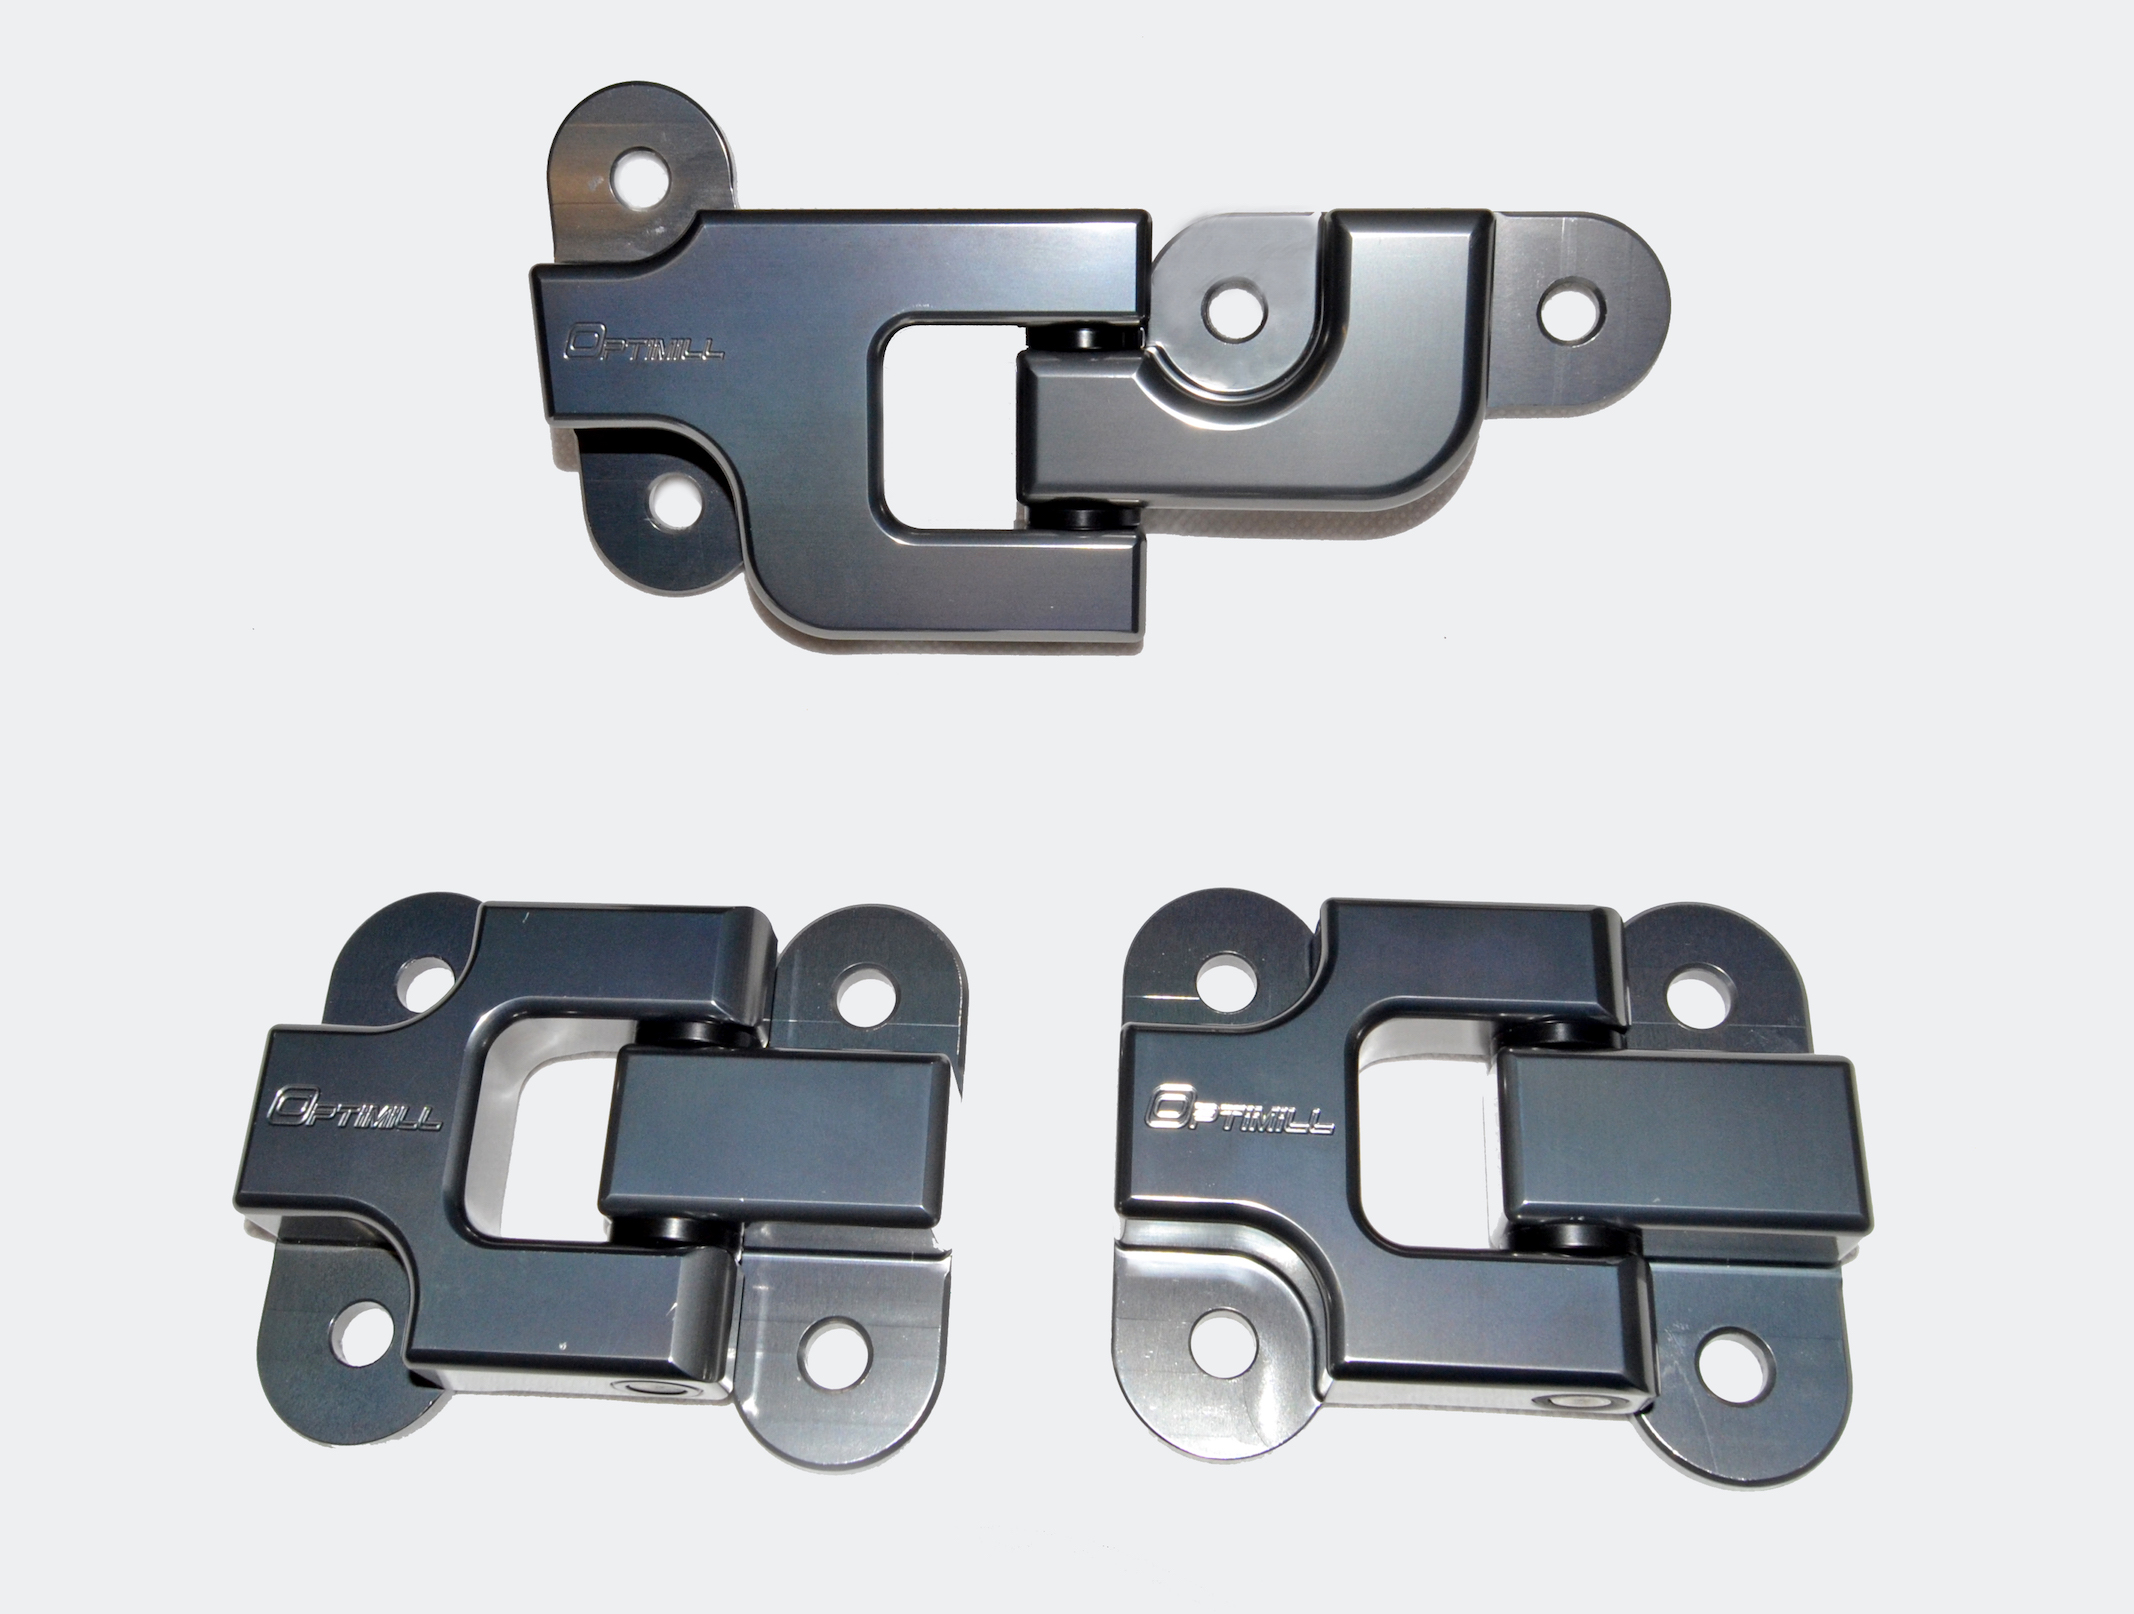 Landrover Defender Rear Door Hinges set of 3 in New Grey